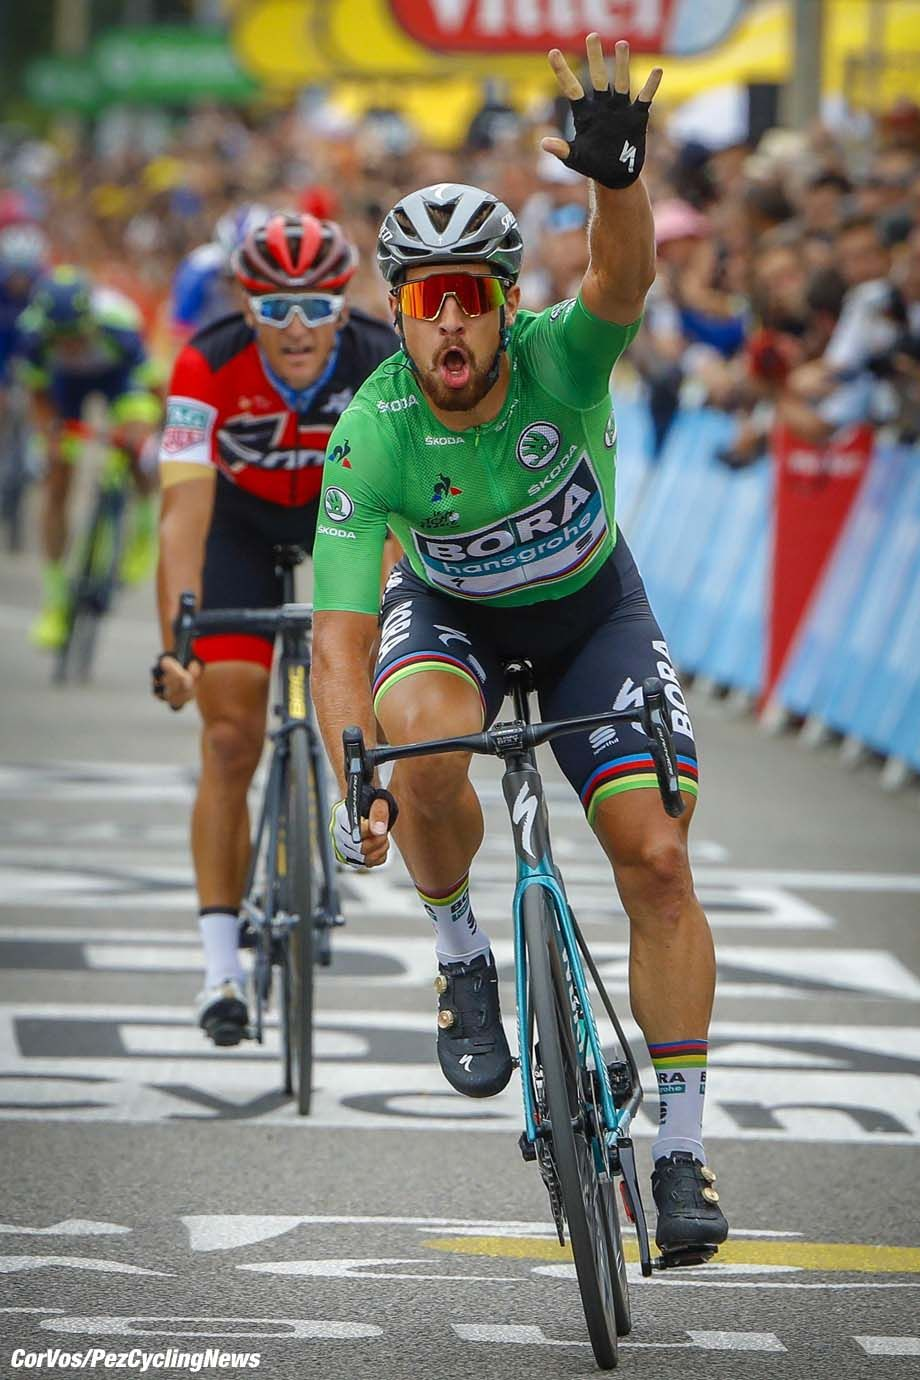 55a57fd6c5e1c9 Peter Sagan wins Stage 13 Tour de France 2018   Le Tour   Cycling ...